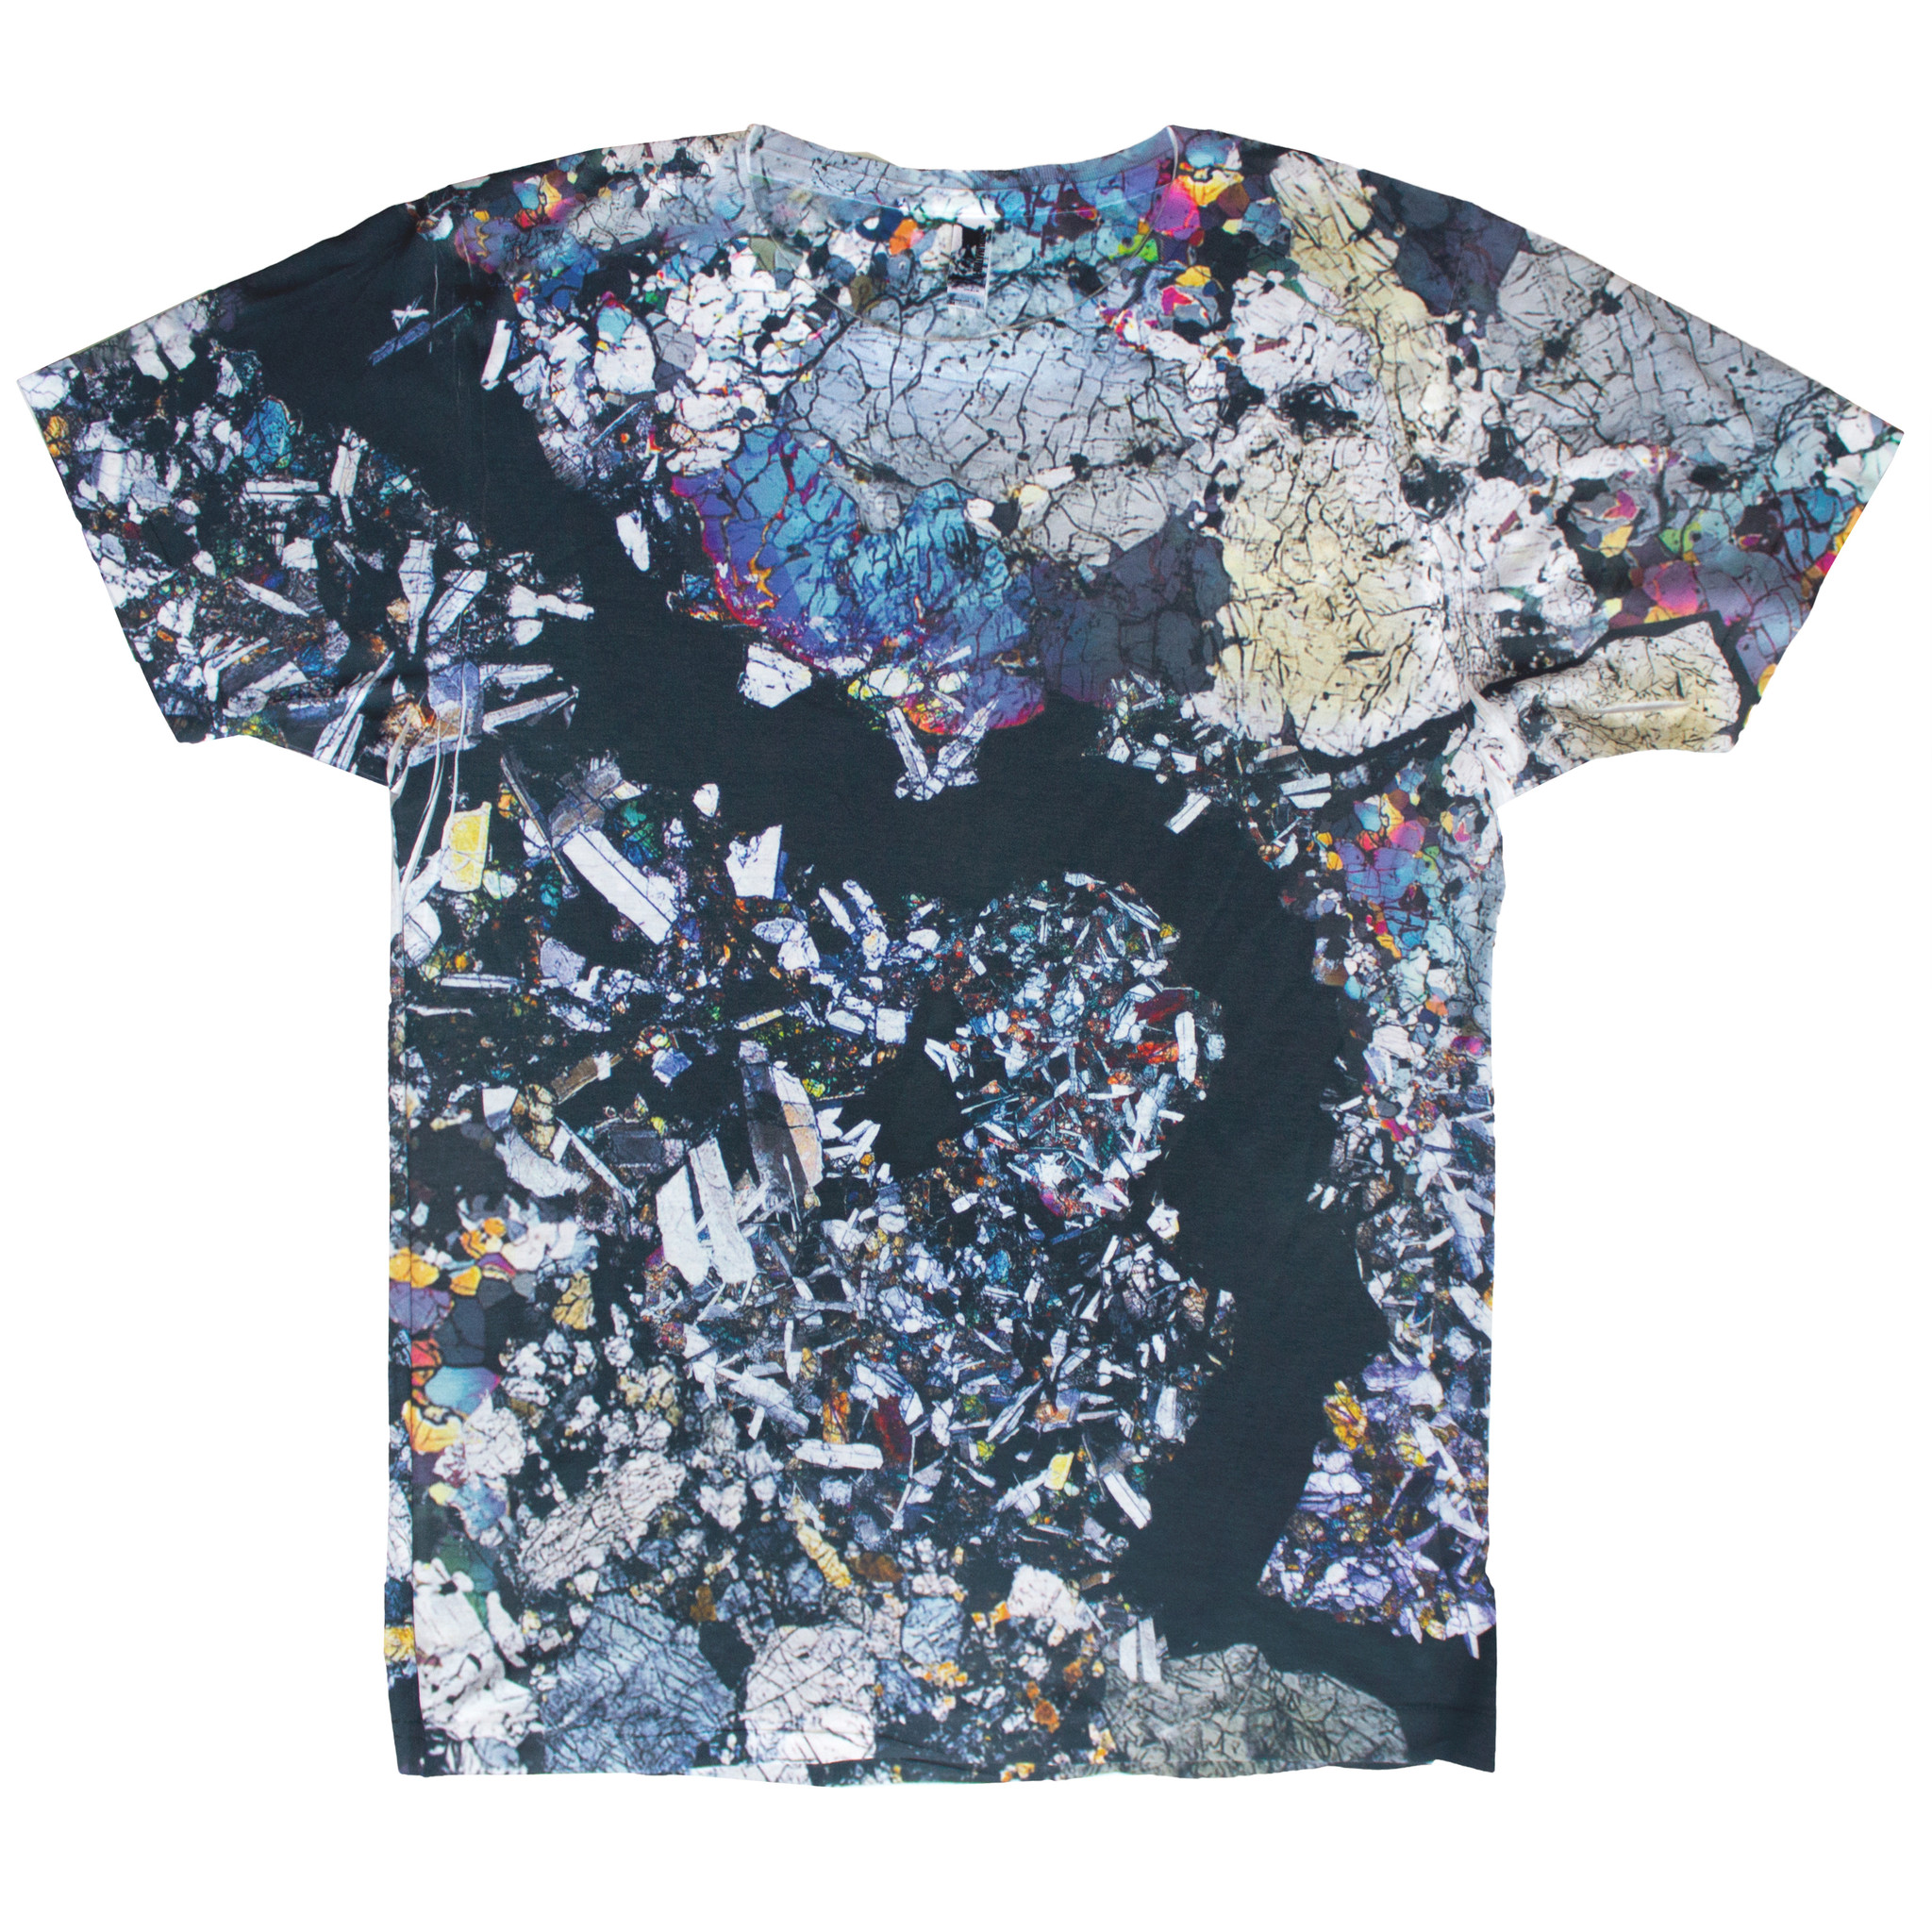 Galaxy print clothing in nebula & galaxy prints